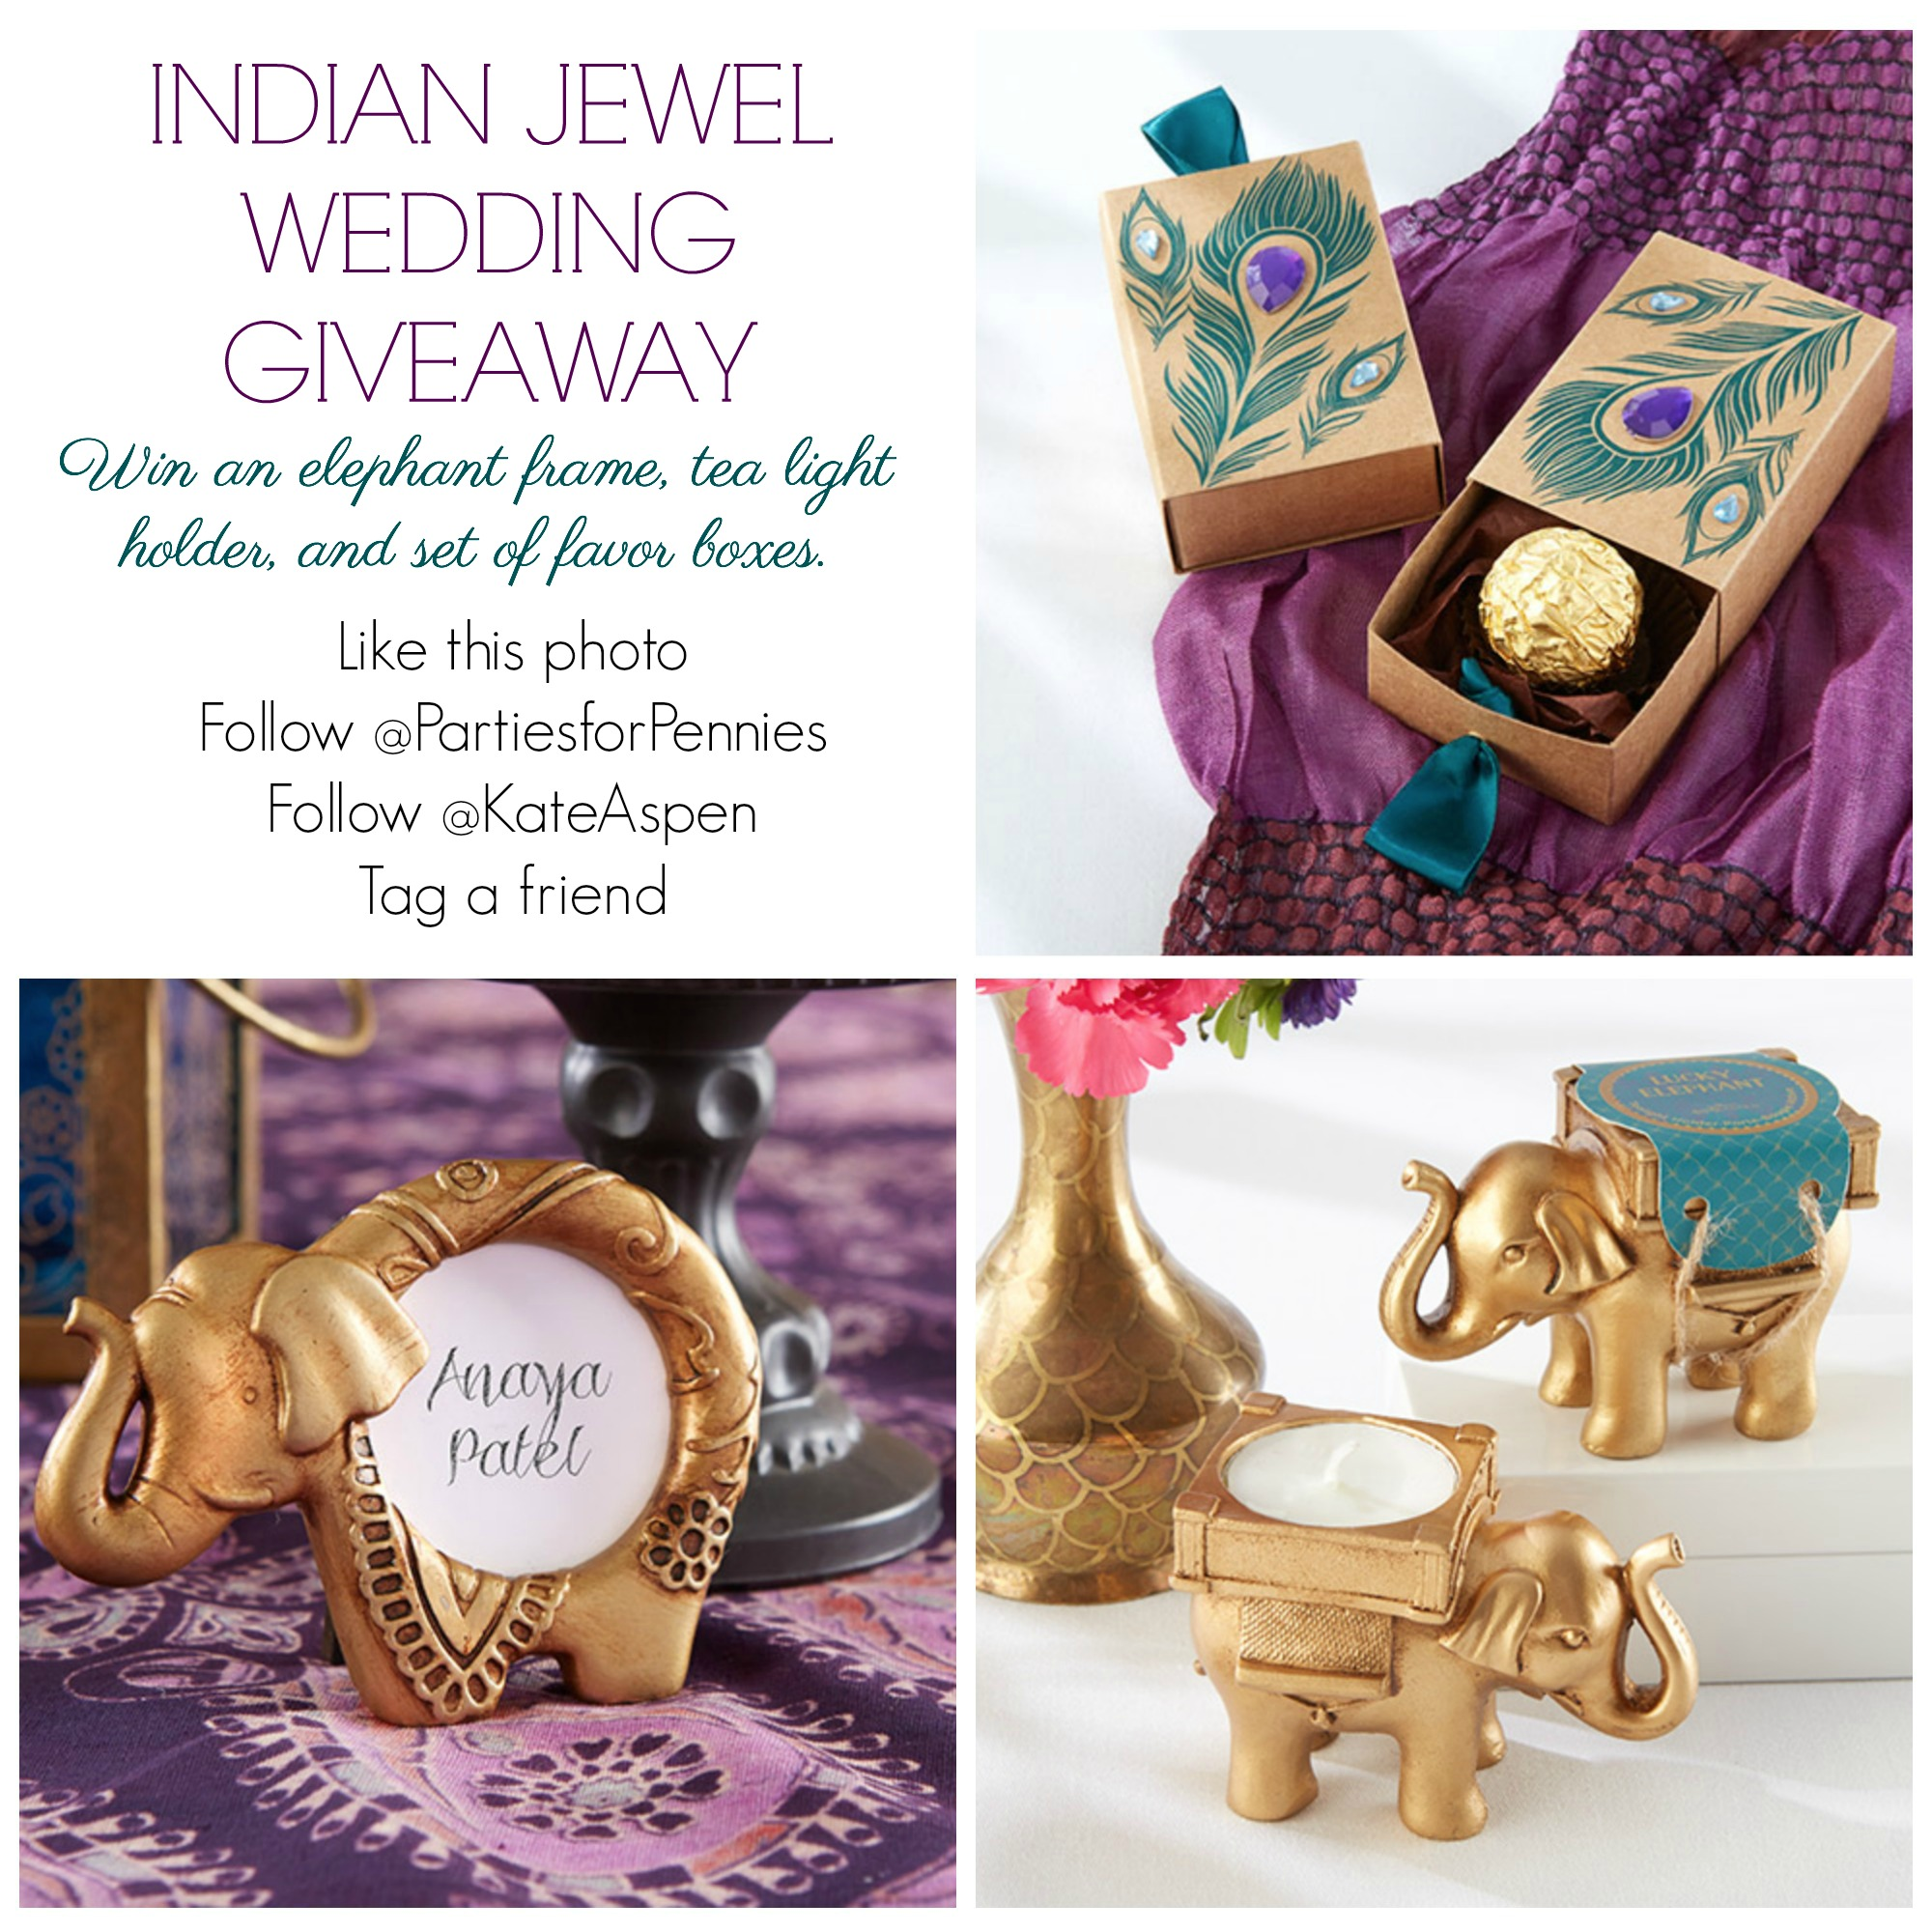 Indian Wedding Instagram Giveaway Info